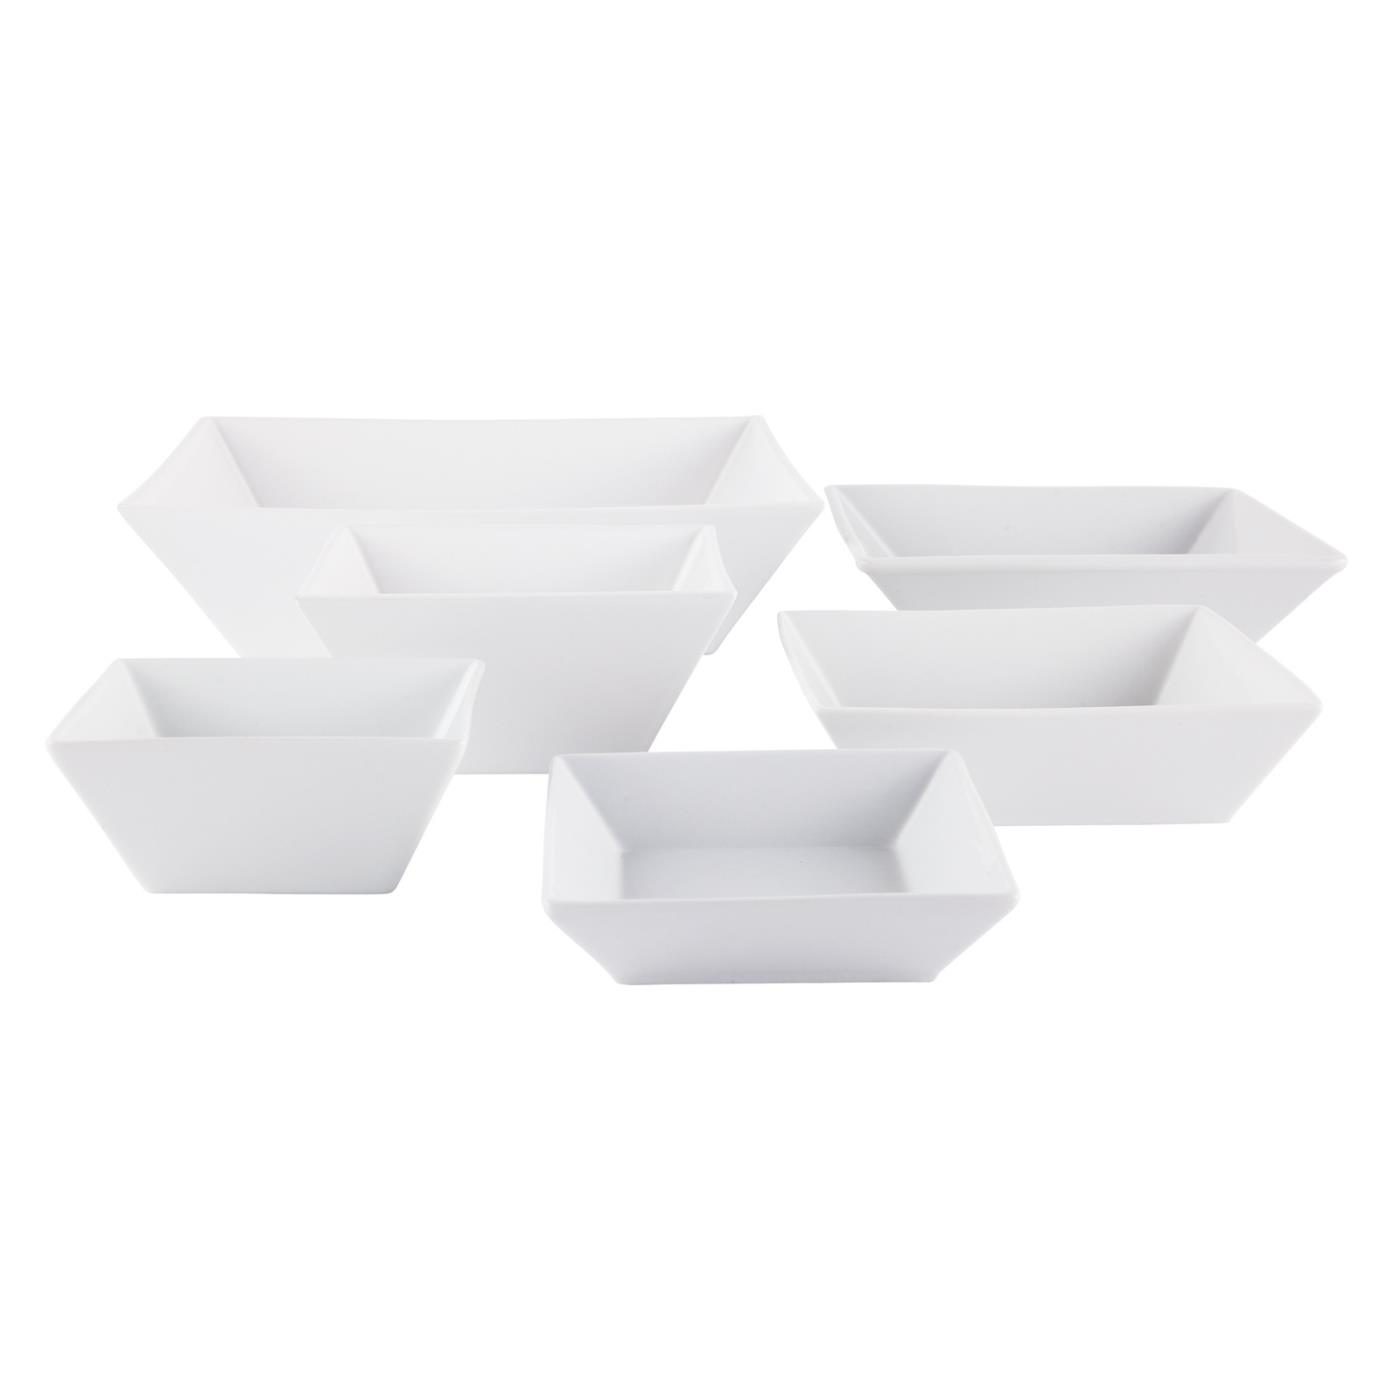 White Ceramic Square Bowl